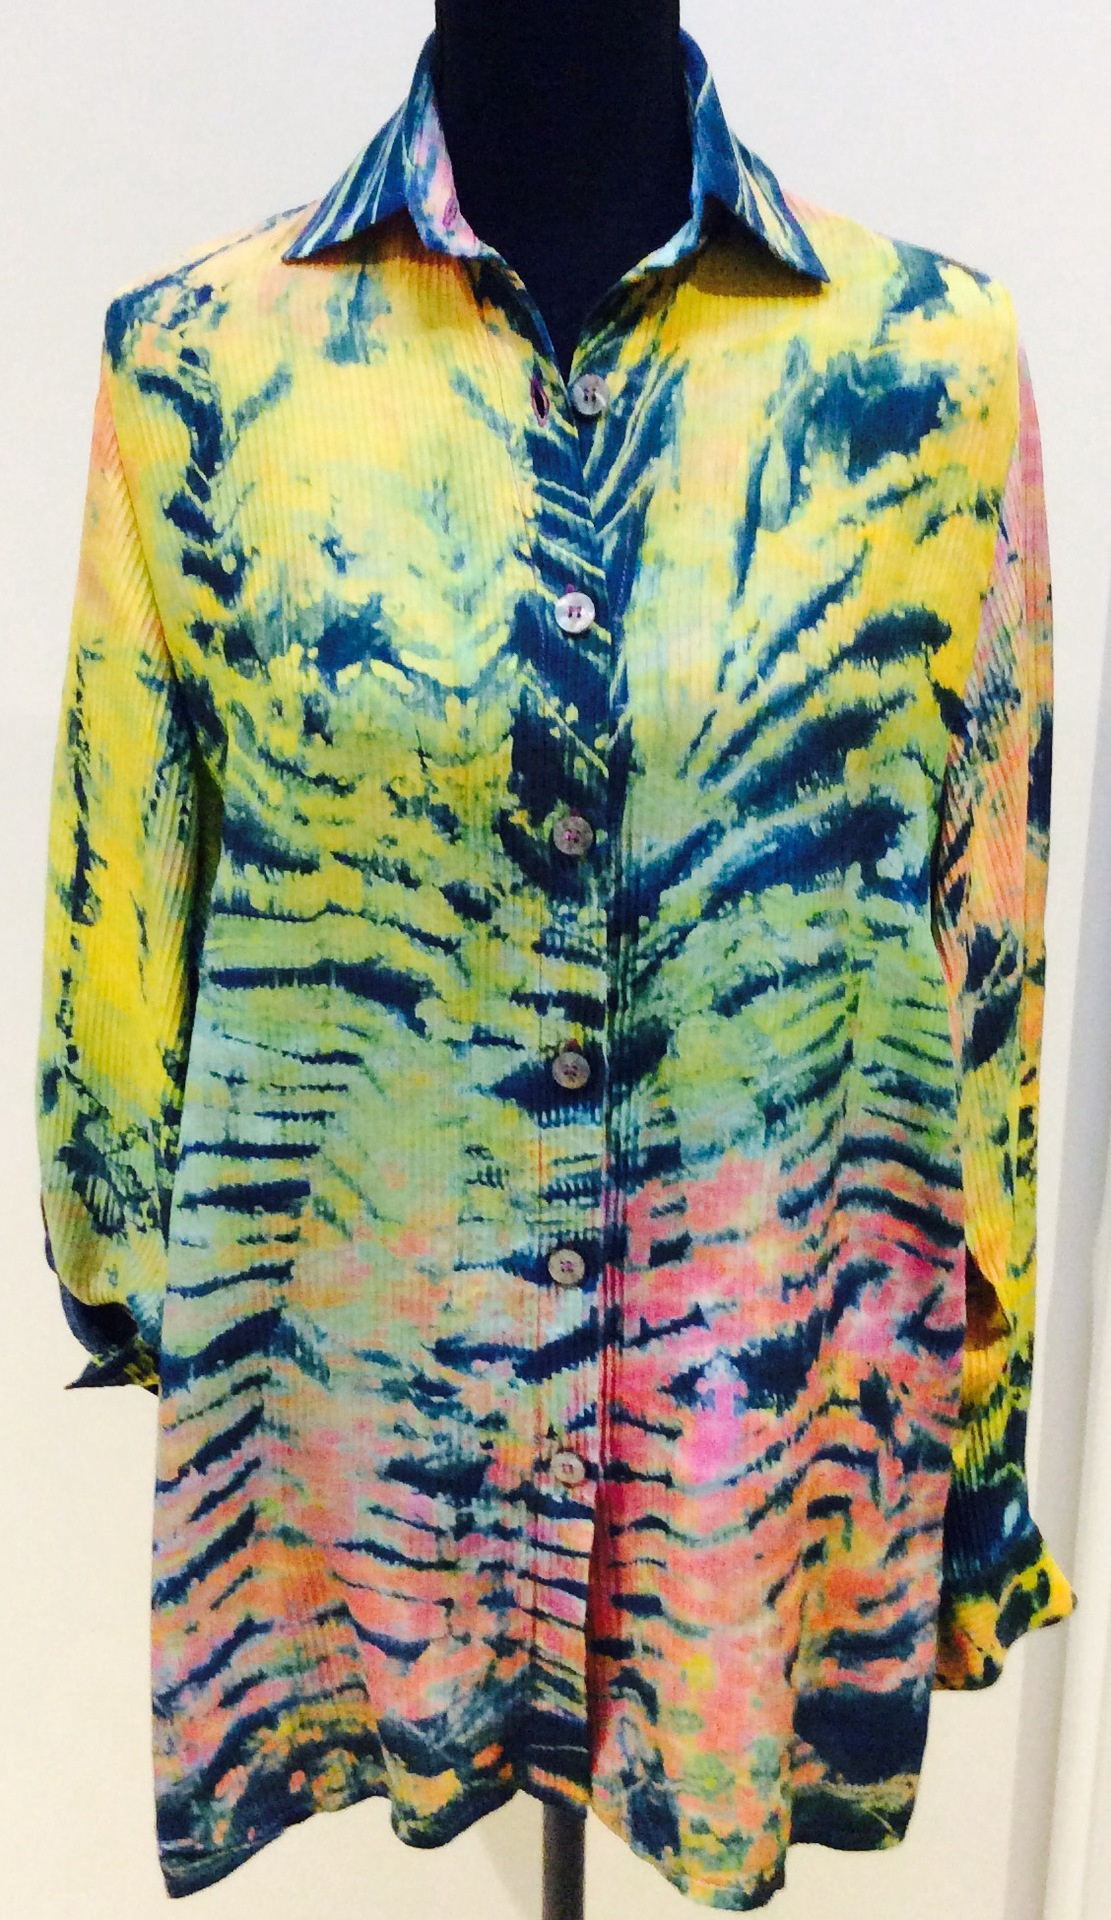 Hand Painted Silk Shirt with Adjustable length sleeves. Size S